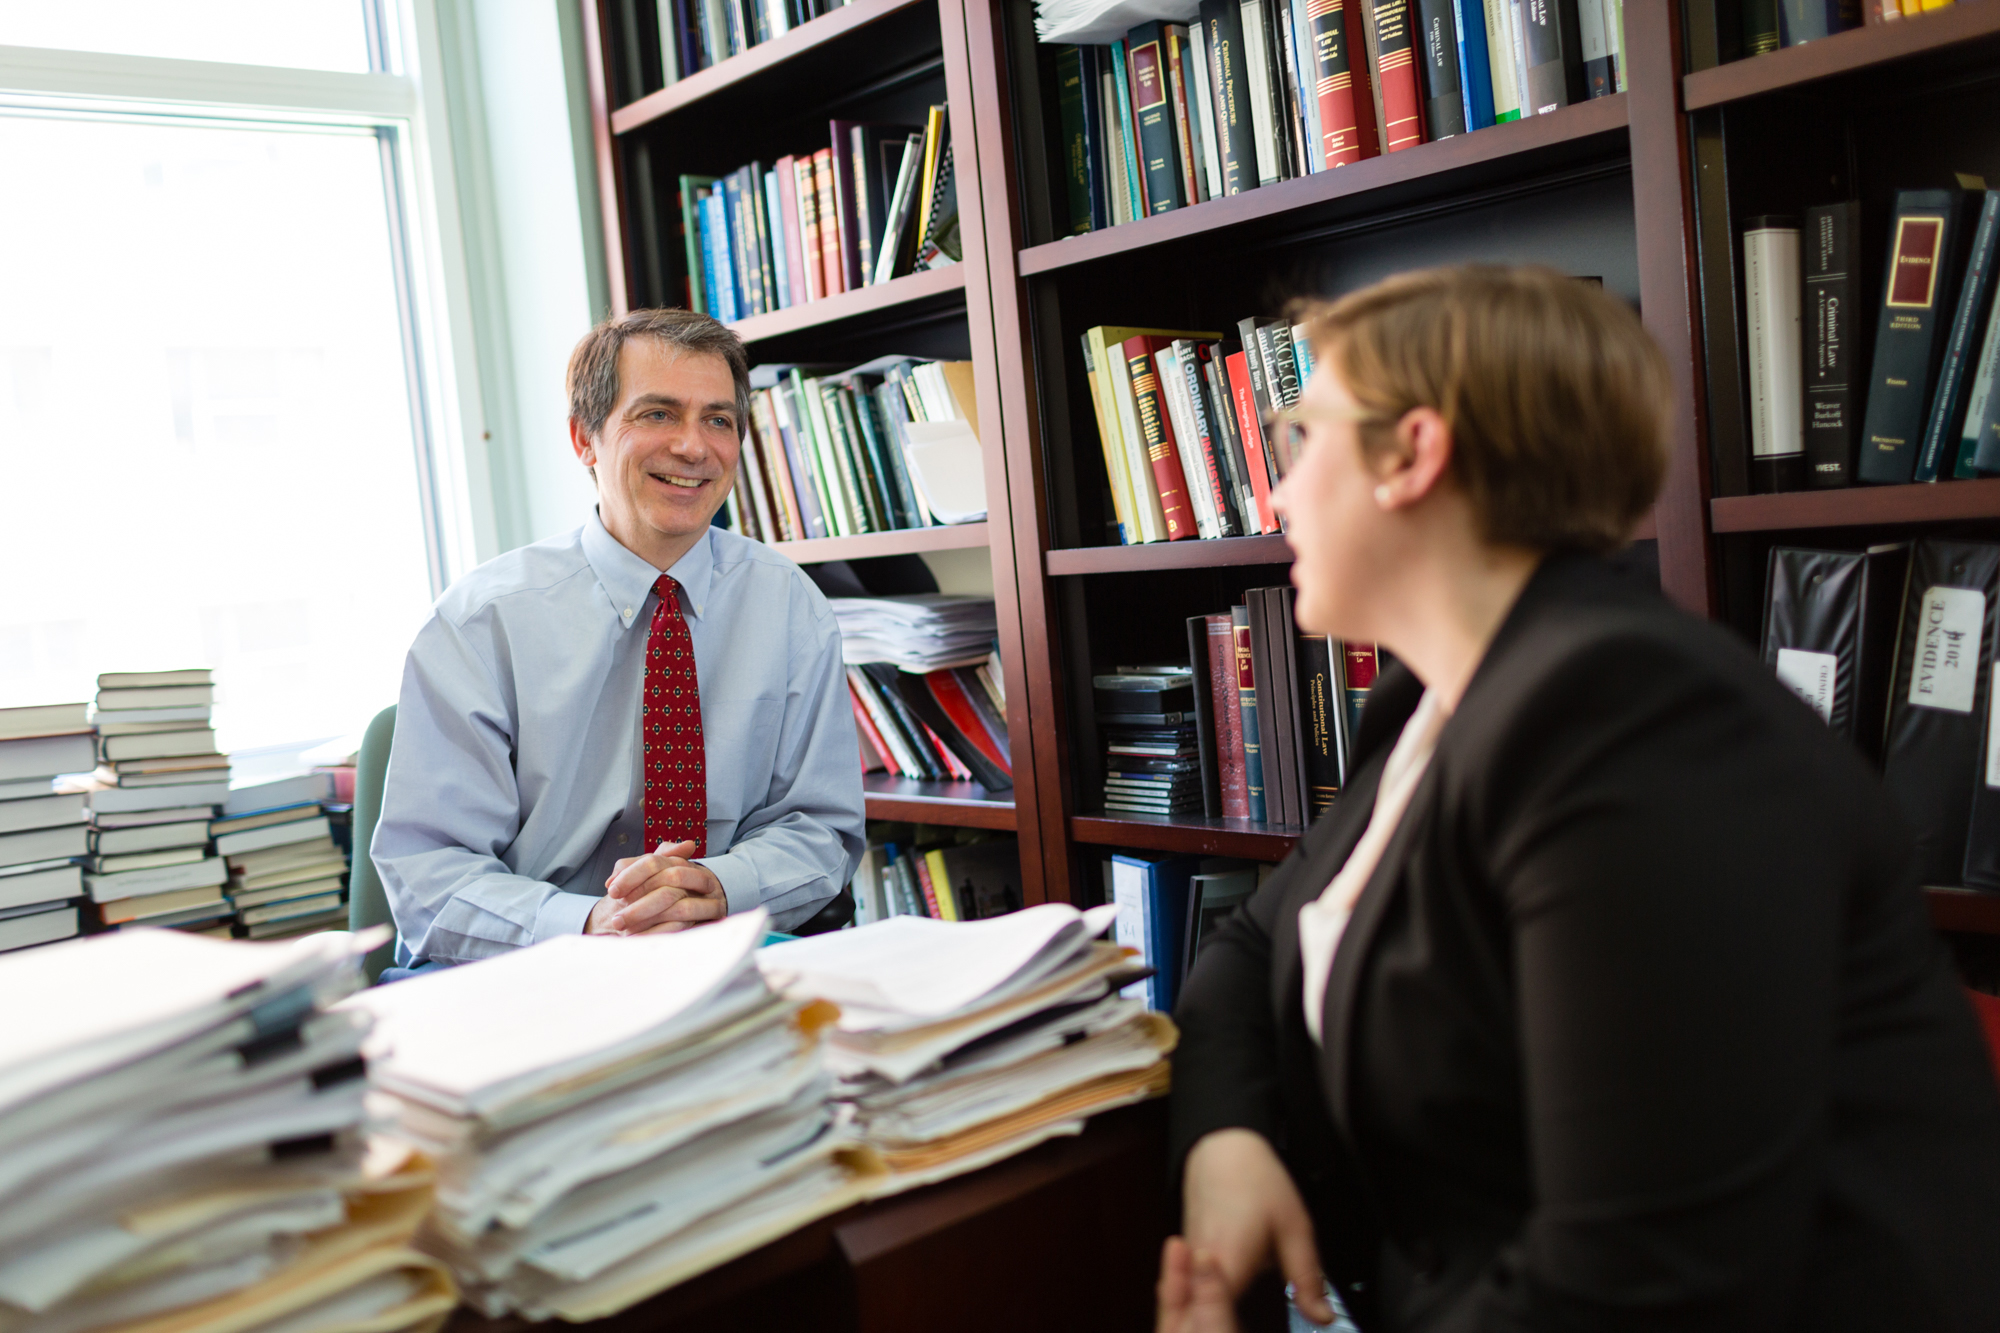 Professor explains JD law degree curriculum to a law student.